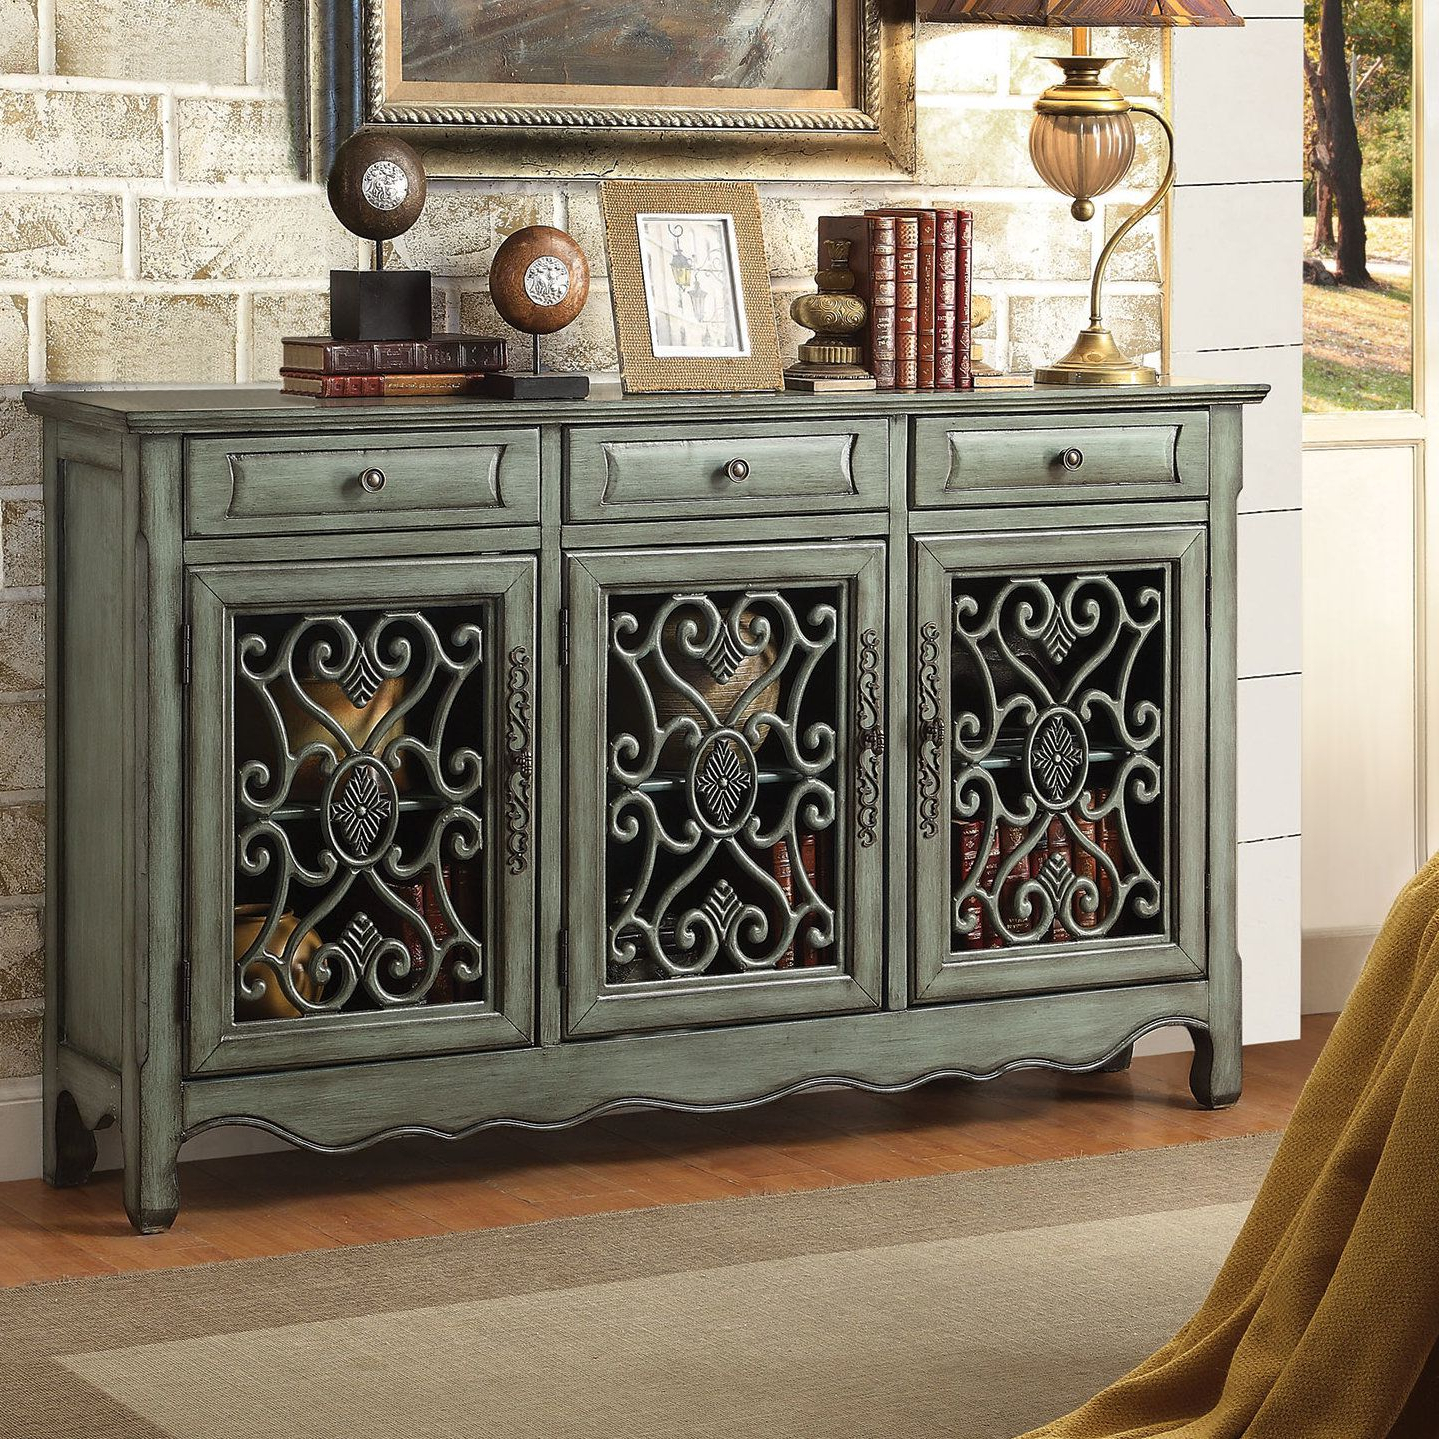 Helvic 3 Drawer 3 Door Accent Cabinet | Farmhouse Furniture For Mauzy Sideboards (View 10 of 20)